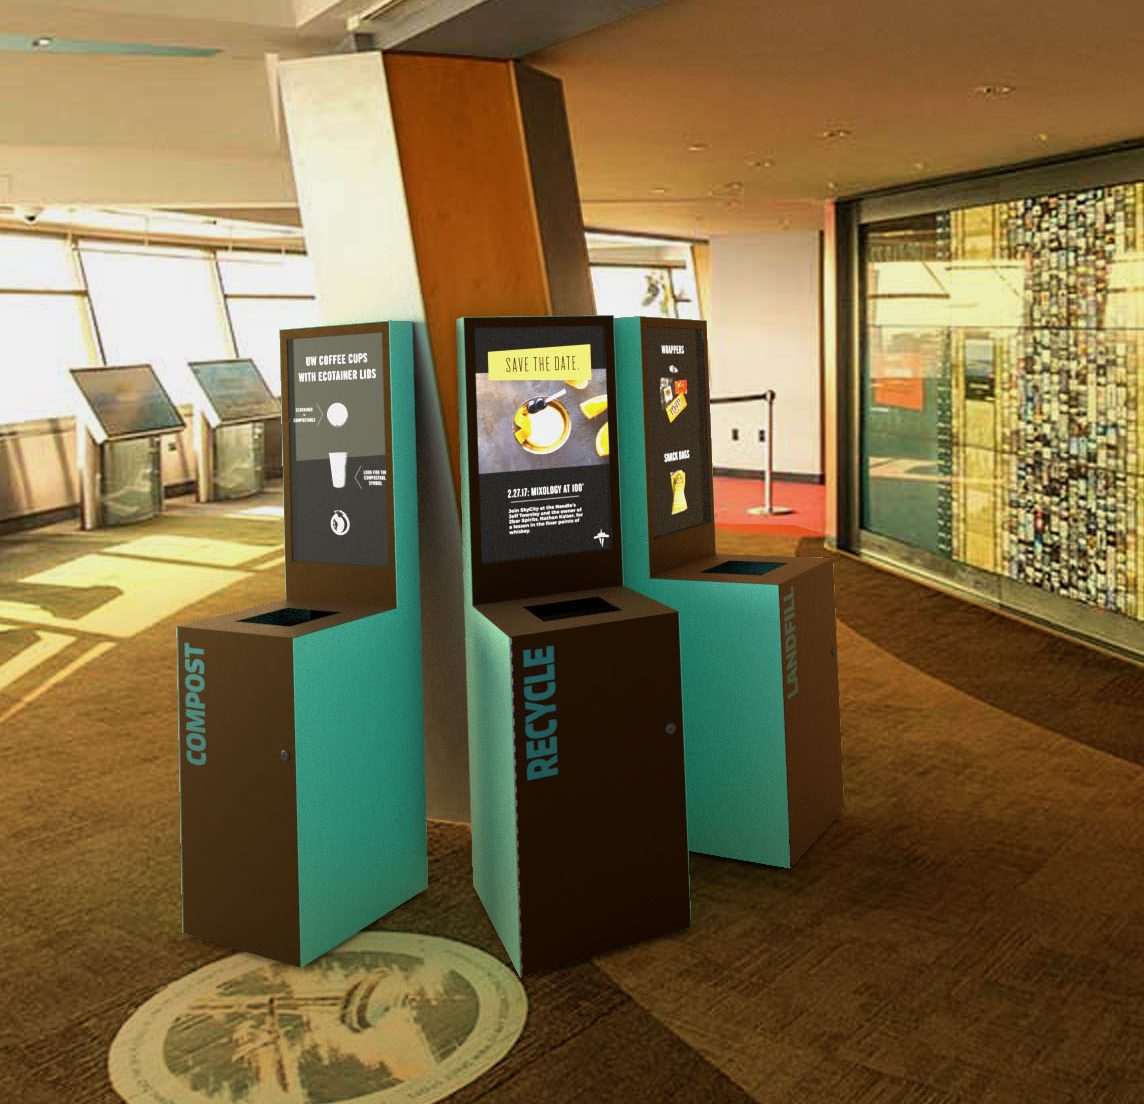 Brown and aqua smart waste bins in Space Needle